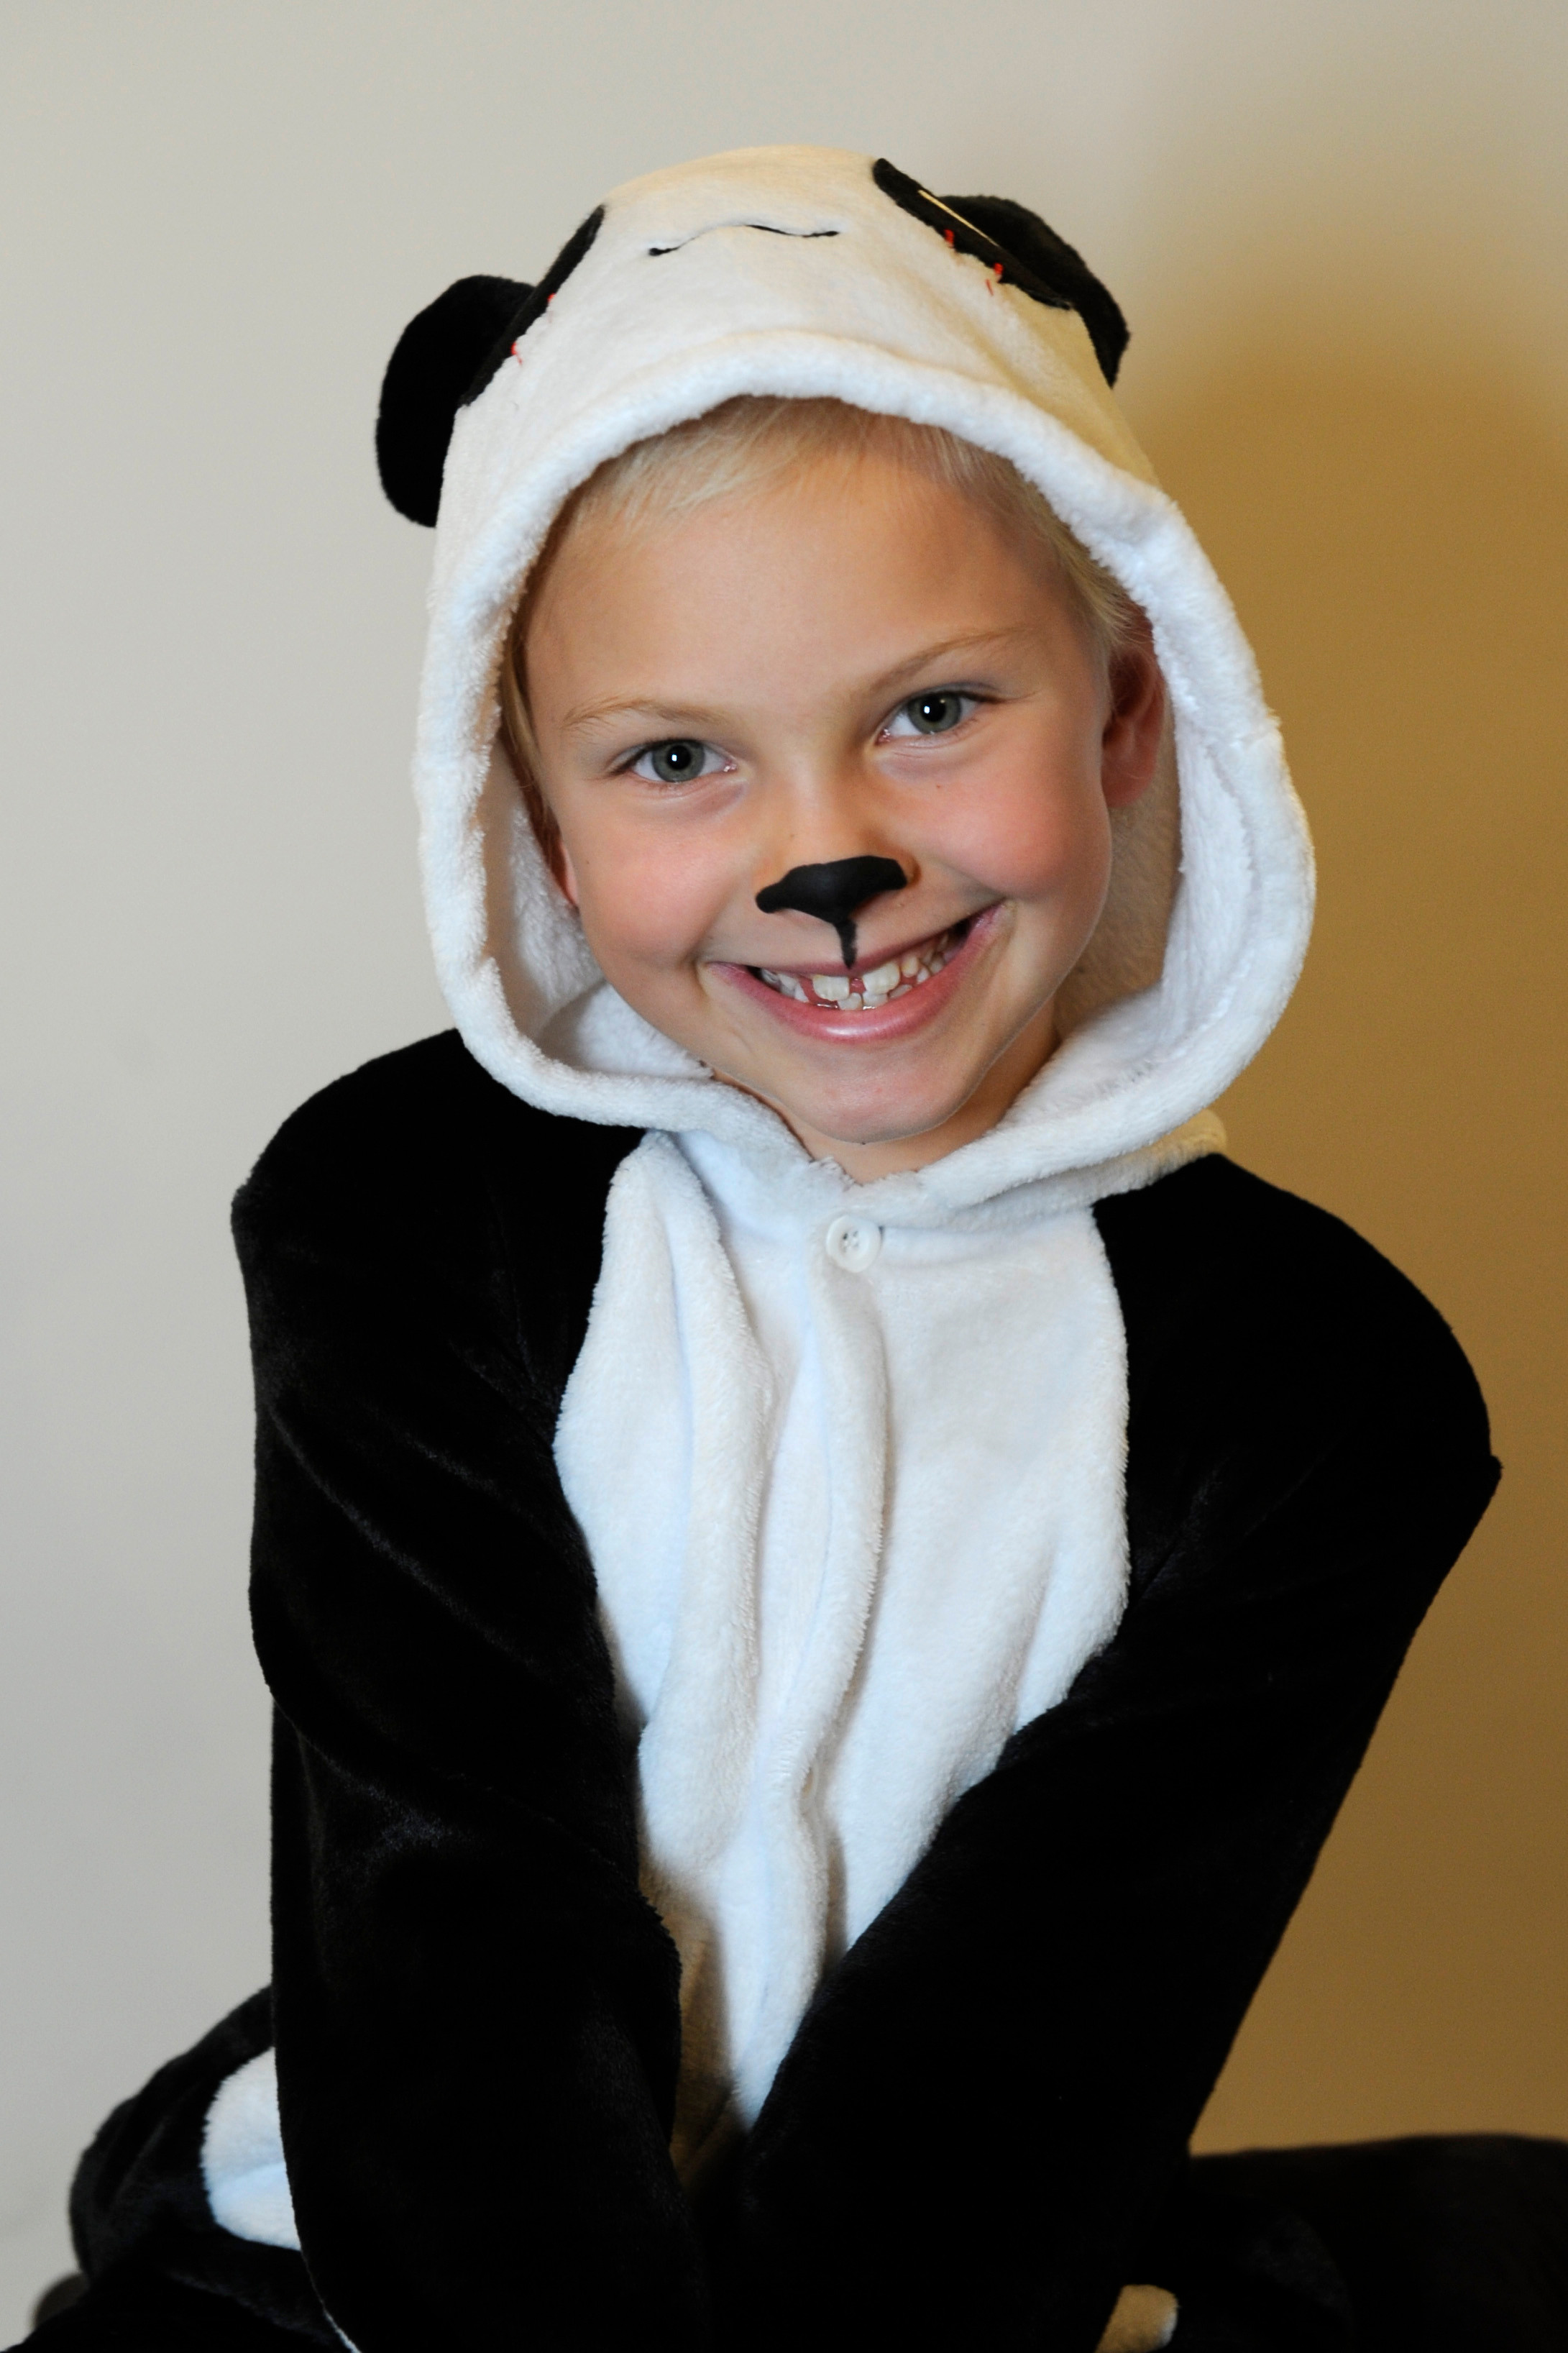 PANTOMIME TERM, Class A, 4-7 years